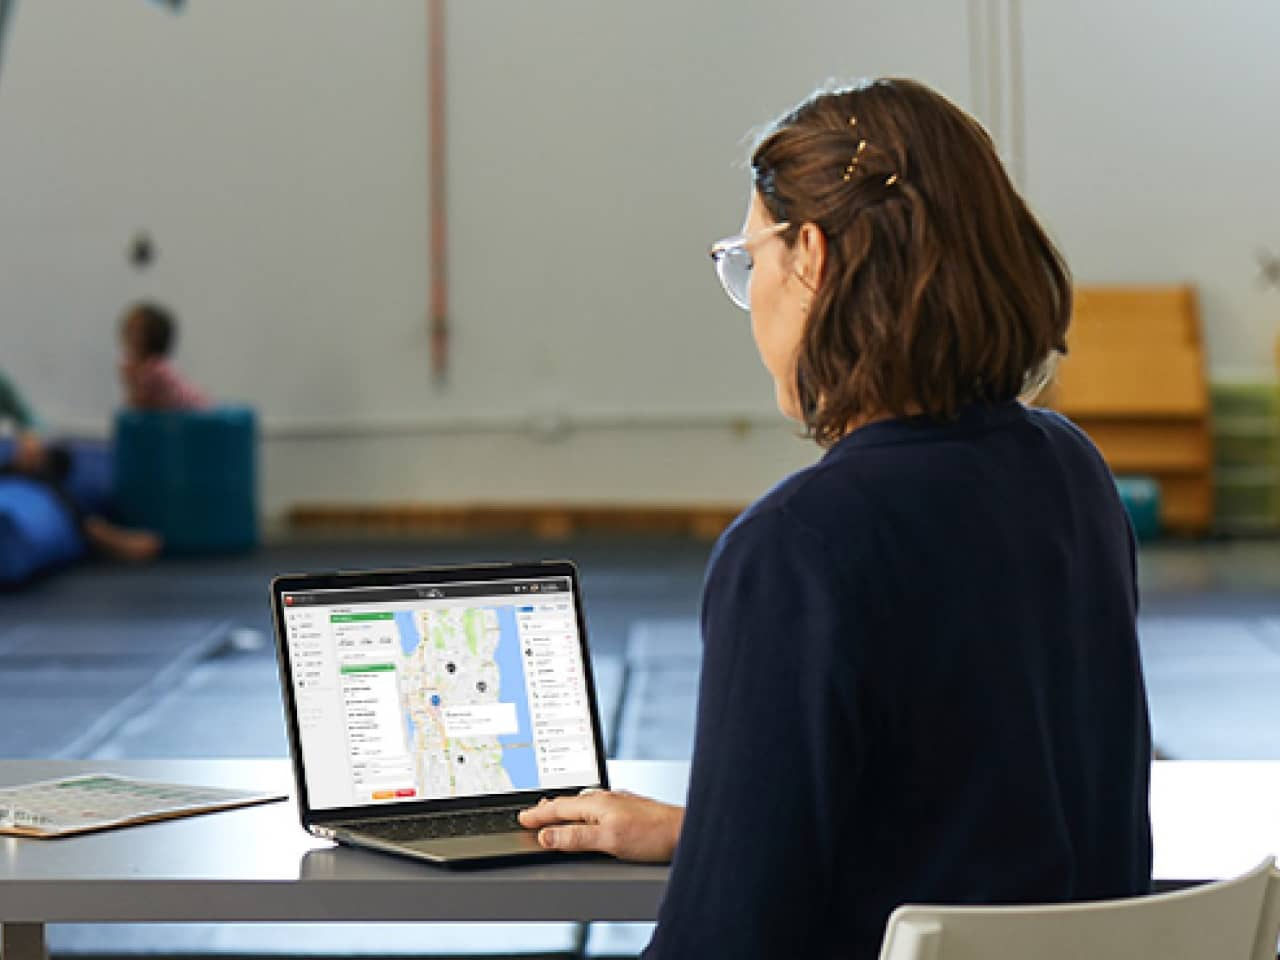 Woman using a laptop to track on a map